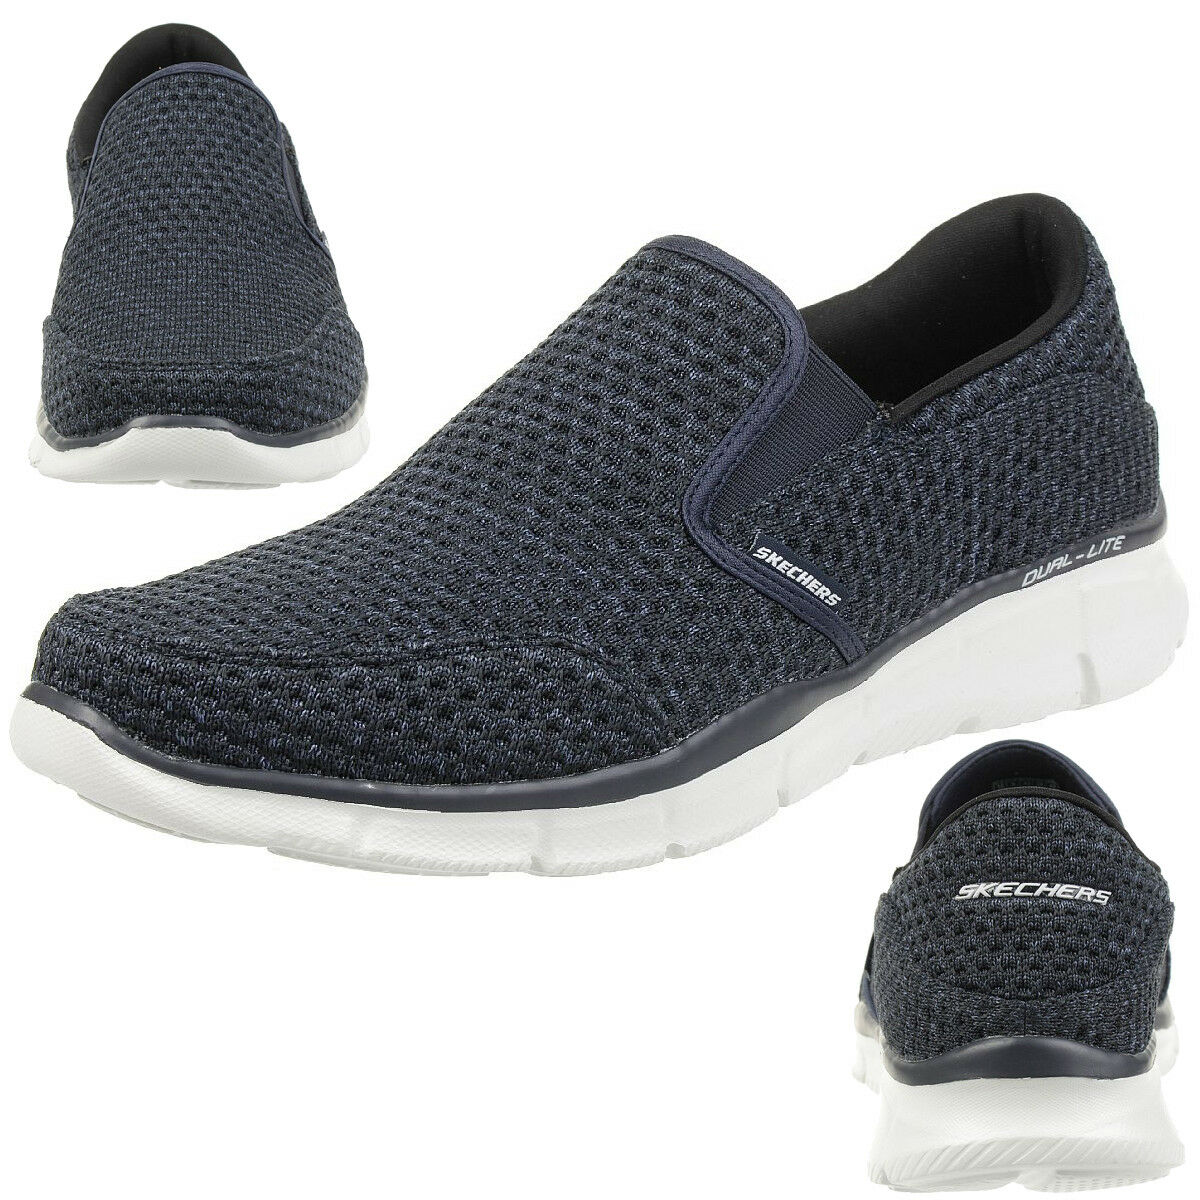 Skechers Equalizer SLICKSTER Herren Slipper Mokassin Slip On blau